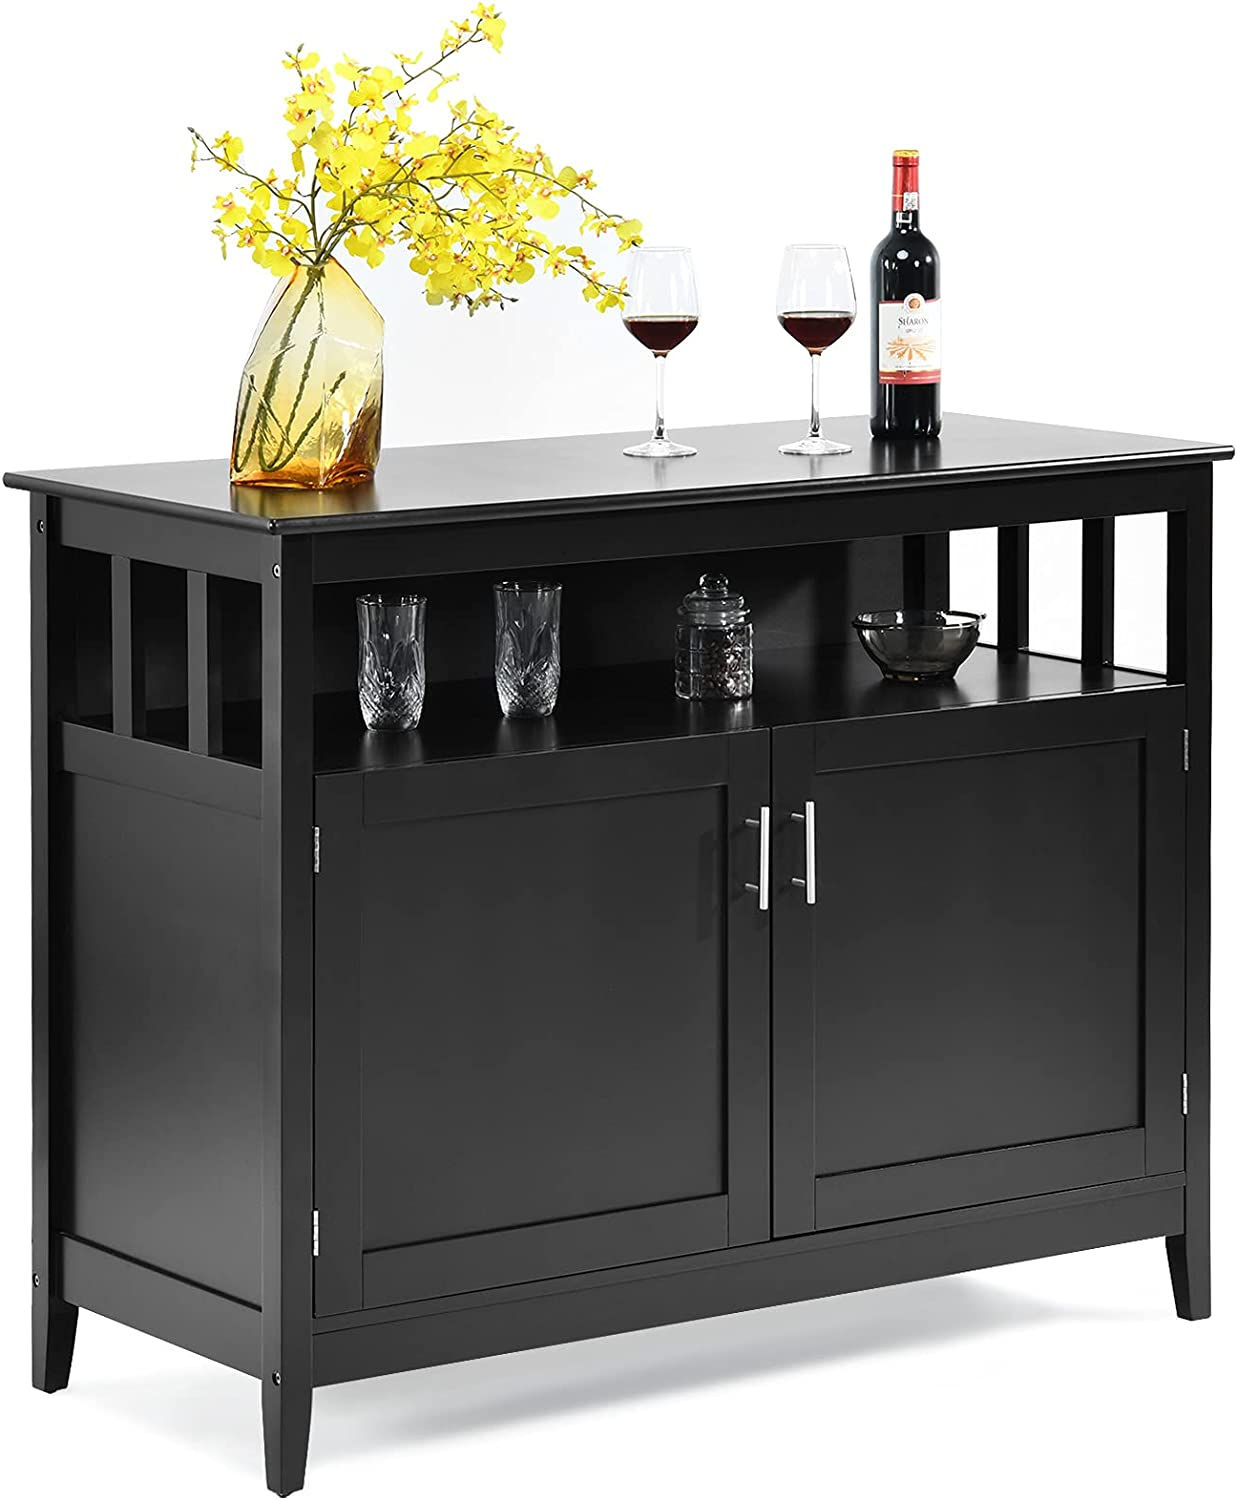 Costzon Kitchen Storage Sideboard Dining Buffet Server Cabinet Cupboard, Free Standing Storage Chest with 2 Level Cabinets and Open Shelf, Adjustable Middle Shelf for Home, Dining Room (Black)